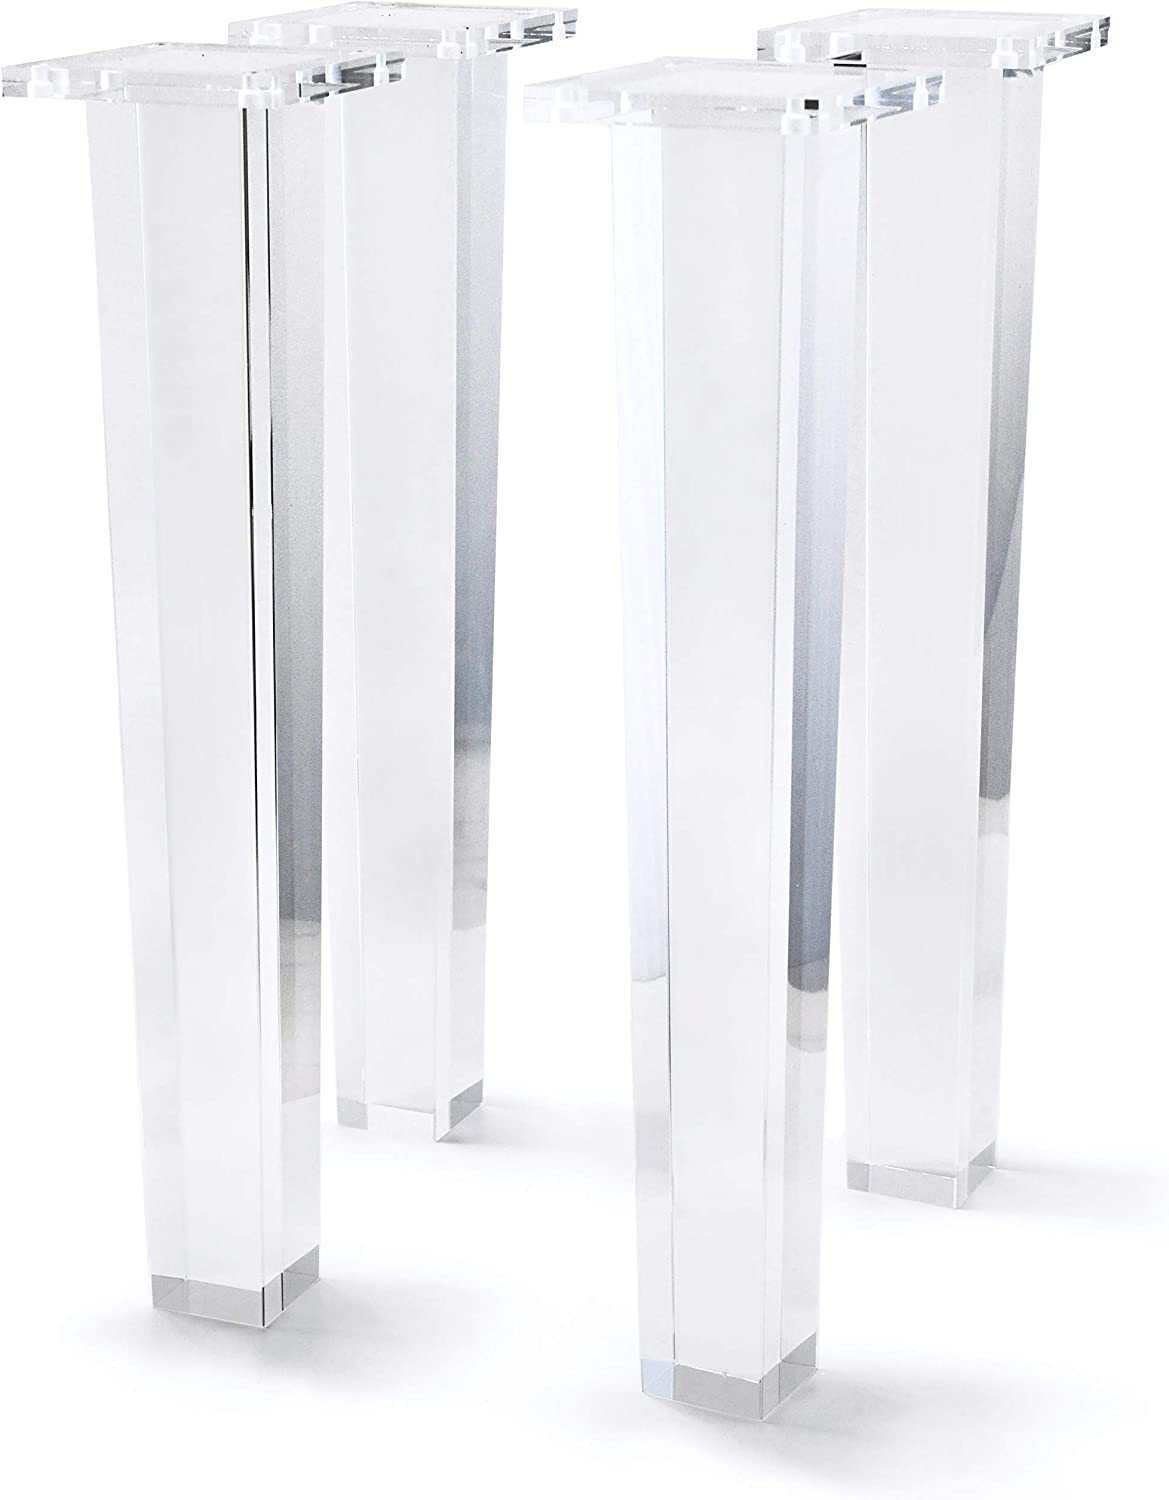 16 Inch Acrylic Furniture Legs Set of 4,Coffee Table,Desk,Bench Replacement Leg Home DIY Projects Modern Clear Decor (Square Leg)